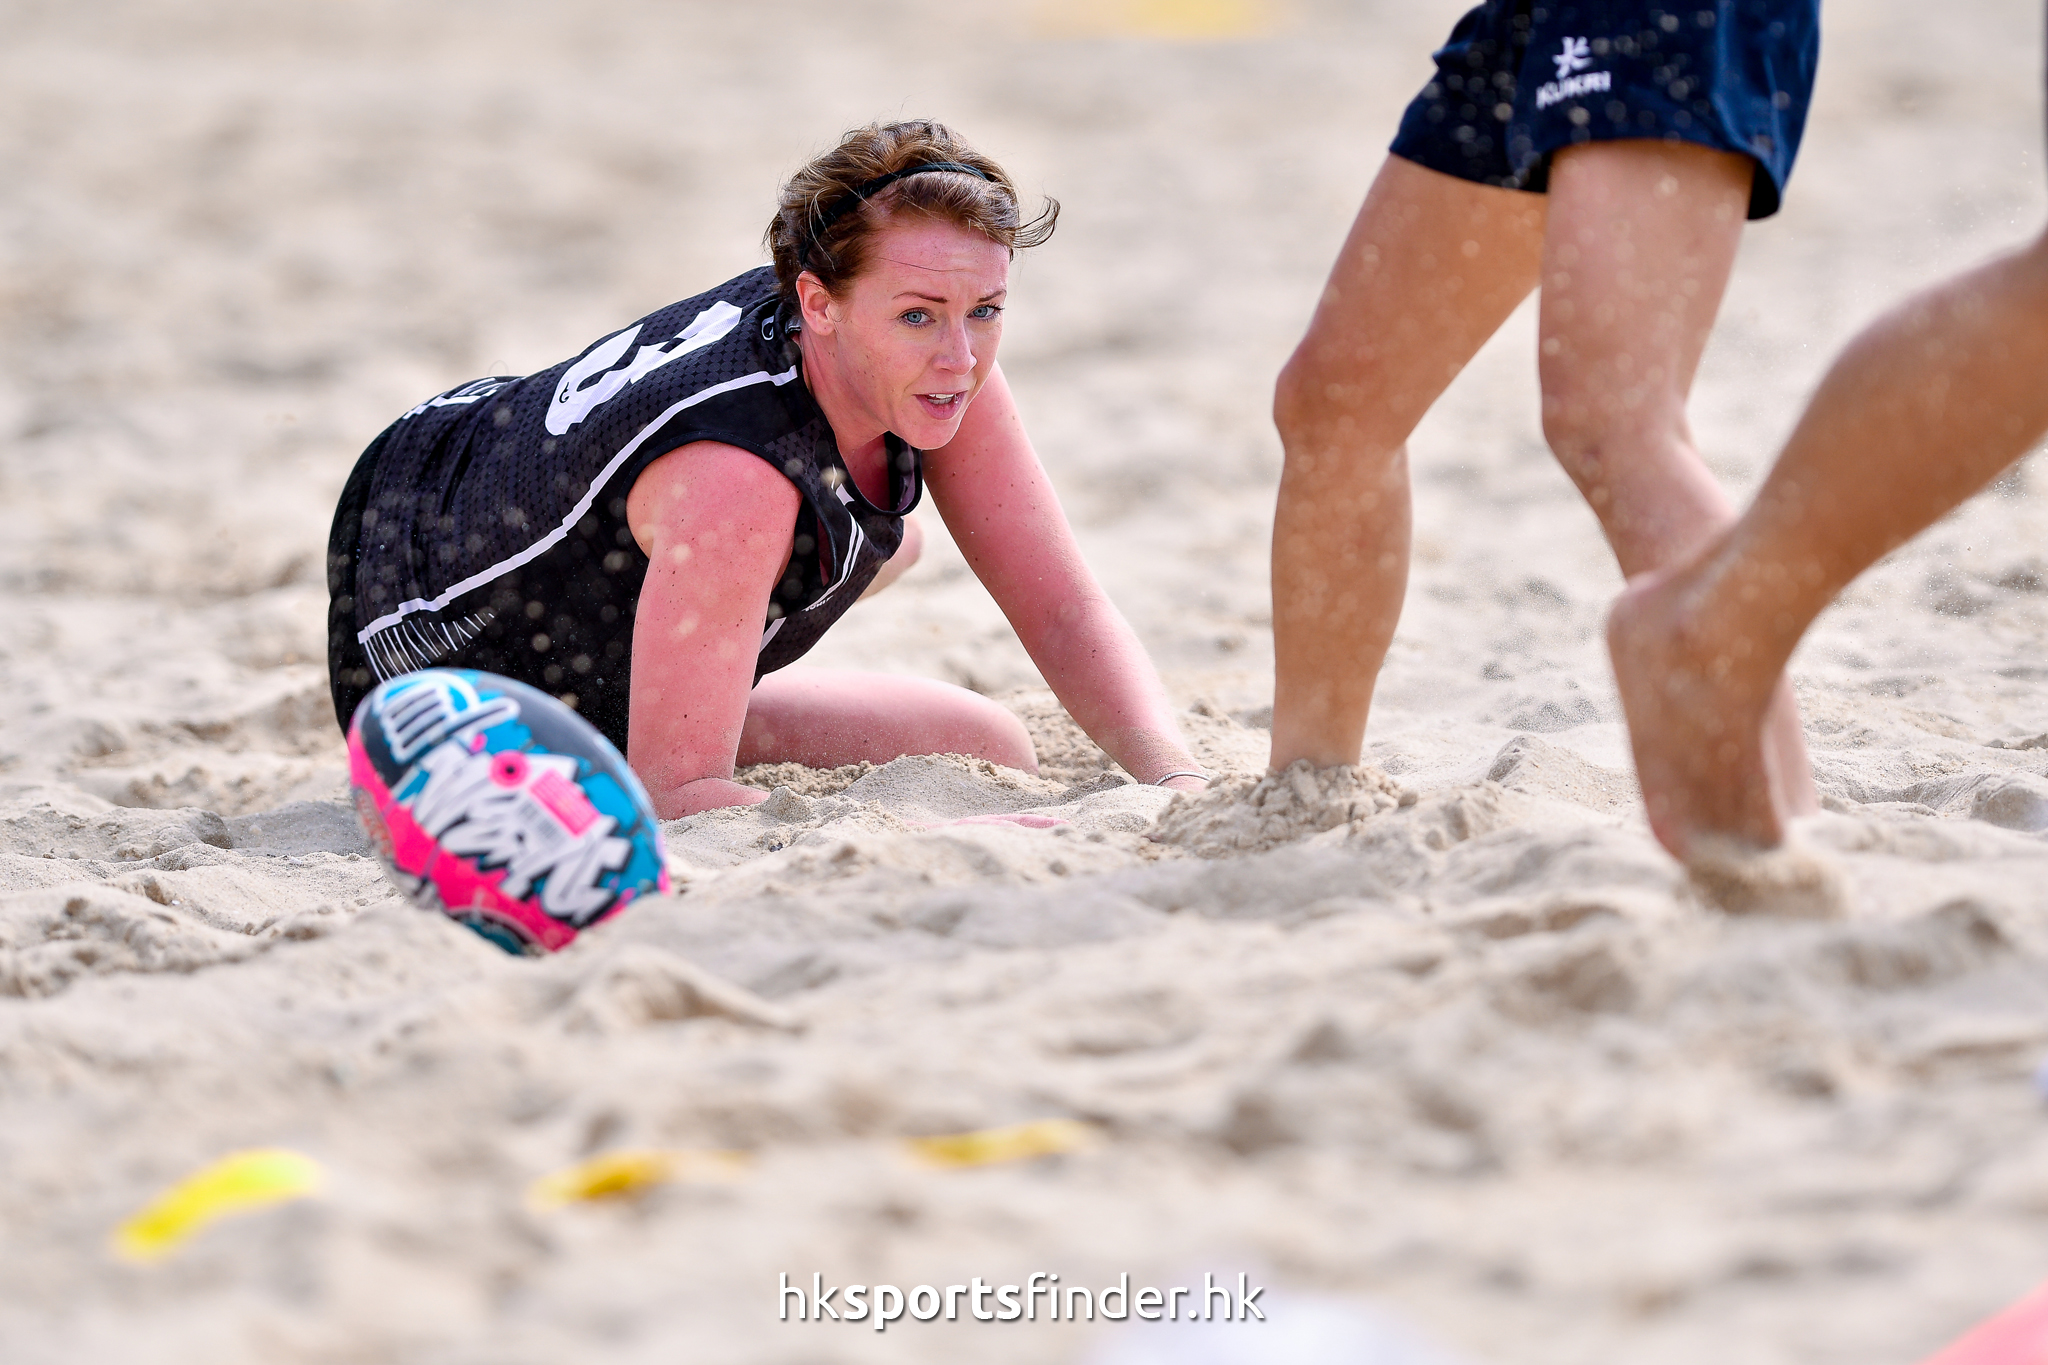 Her_GoldCoastTertiaryBeachRugby_16-11-12 11.01.54_000235.jpg